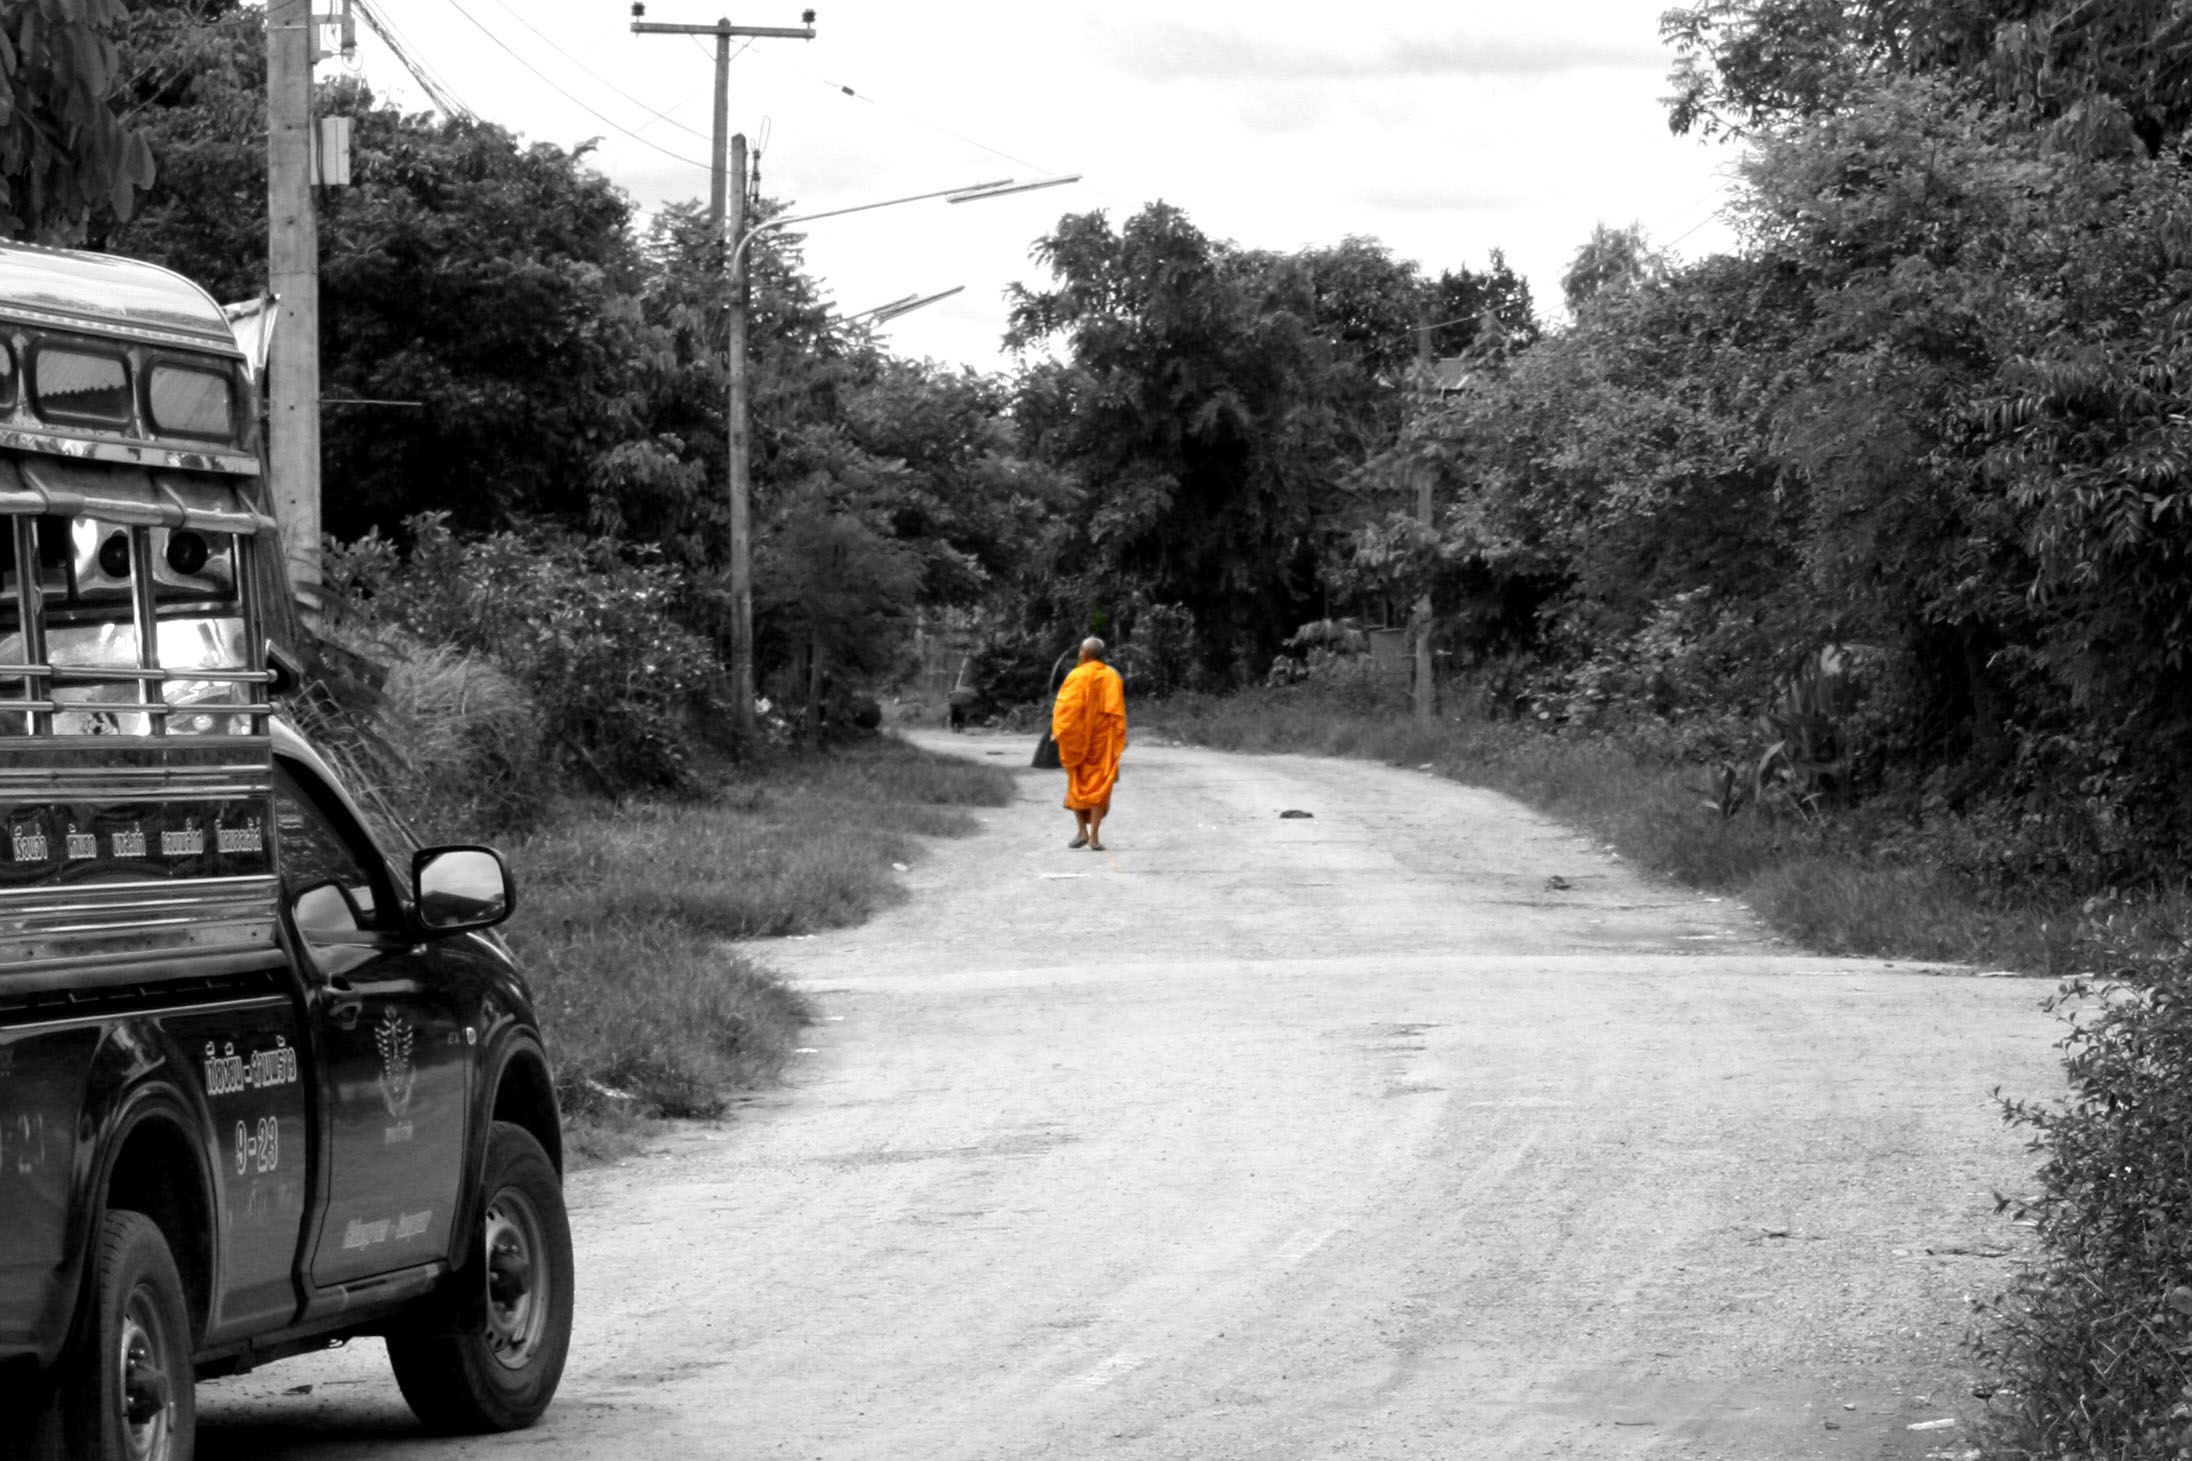 Monk walking in Thailand, poster for wall